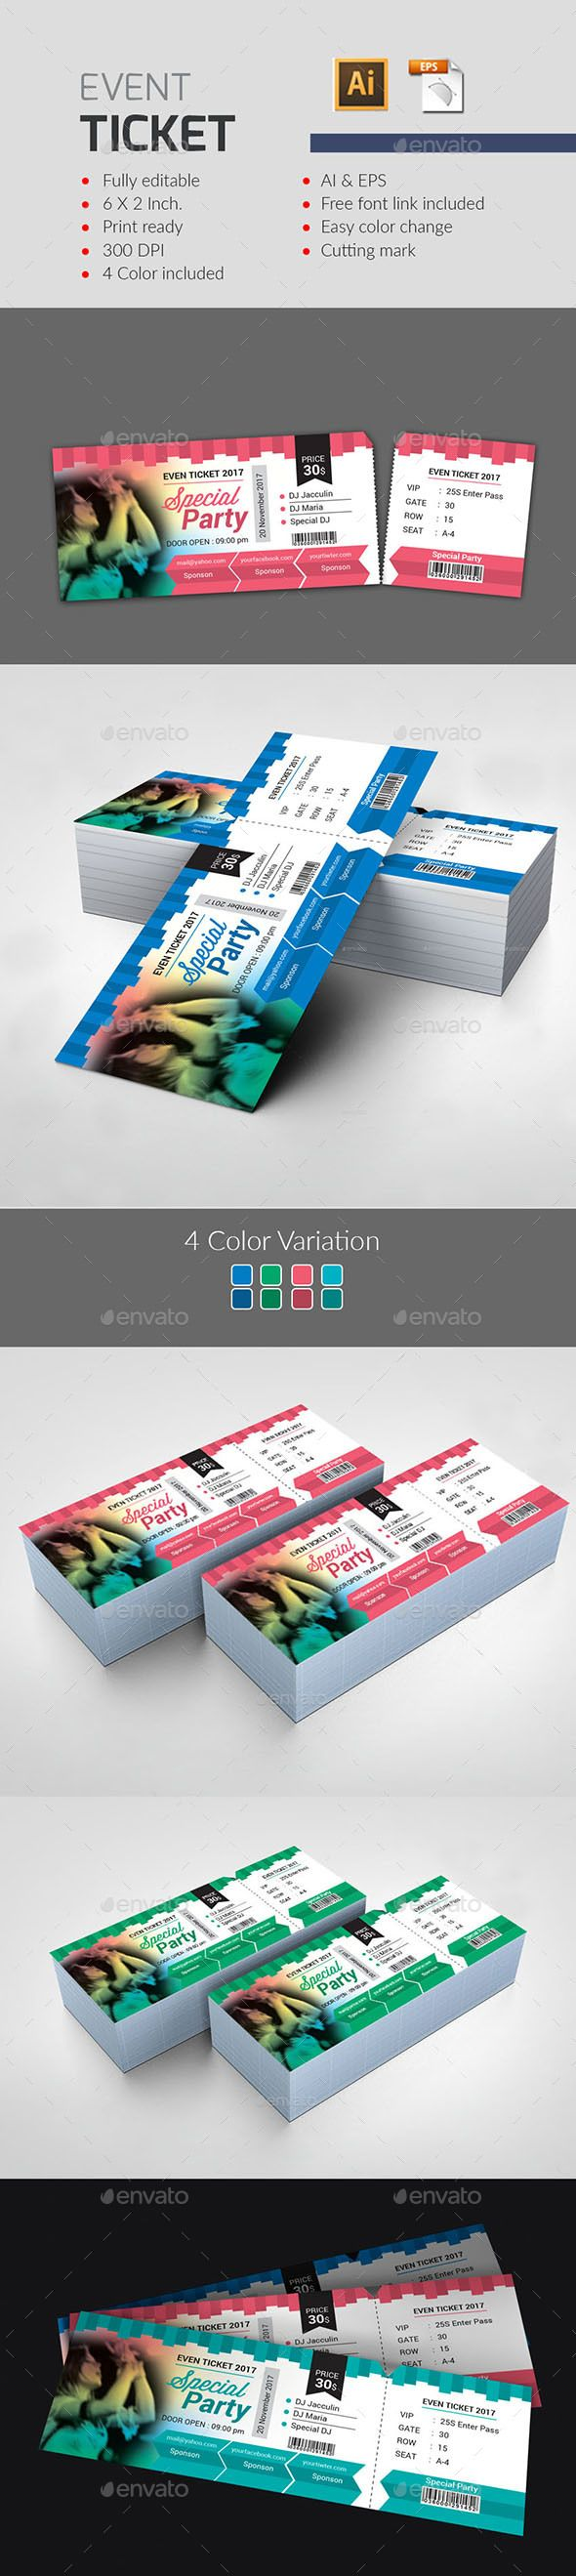 1000 ideas about ticket template on pinterest concert ticket template ticket template free. Black Bedroom Furniture Sets. Home Design Ideas